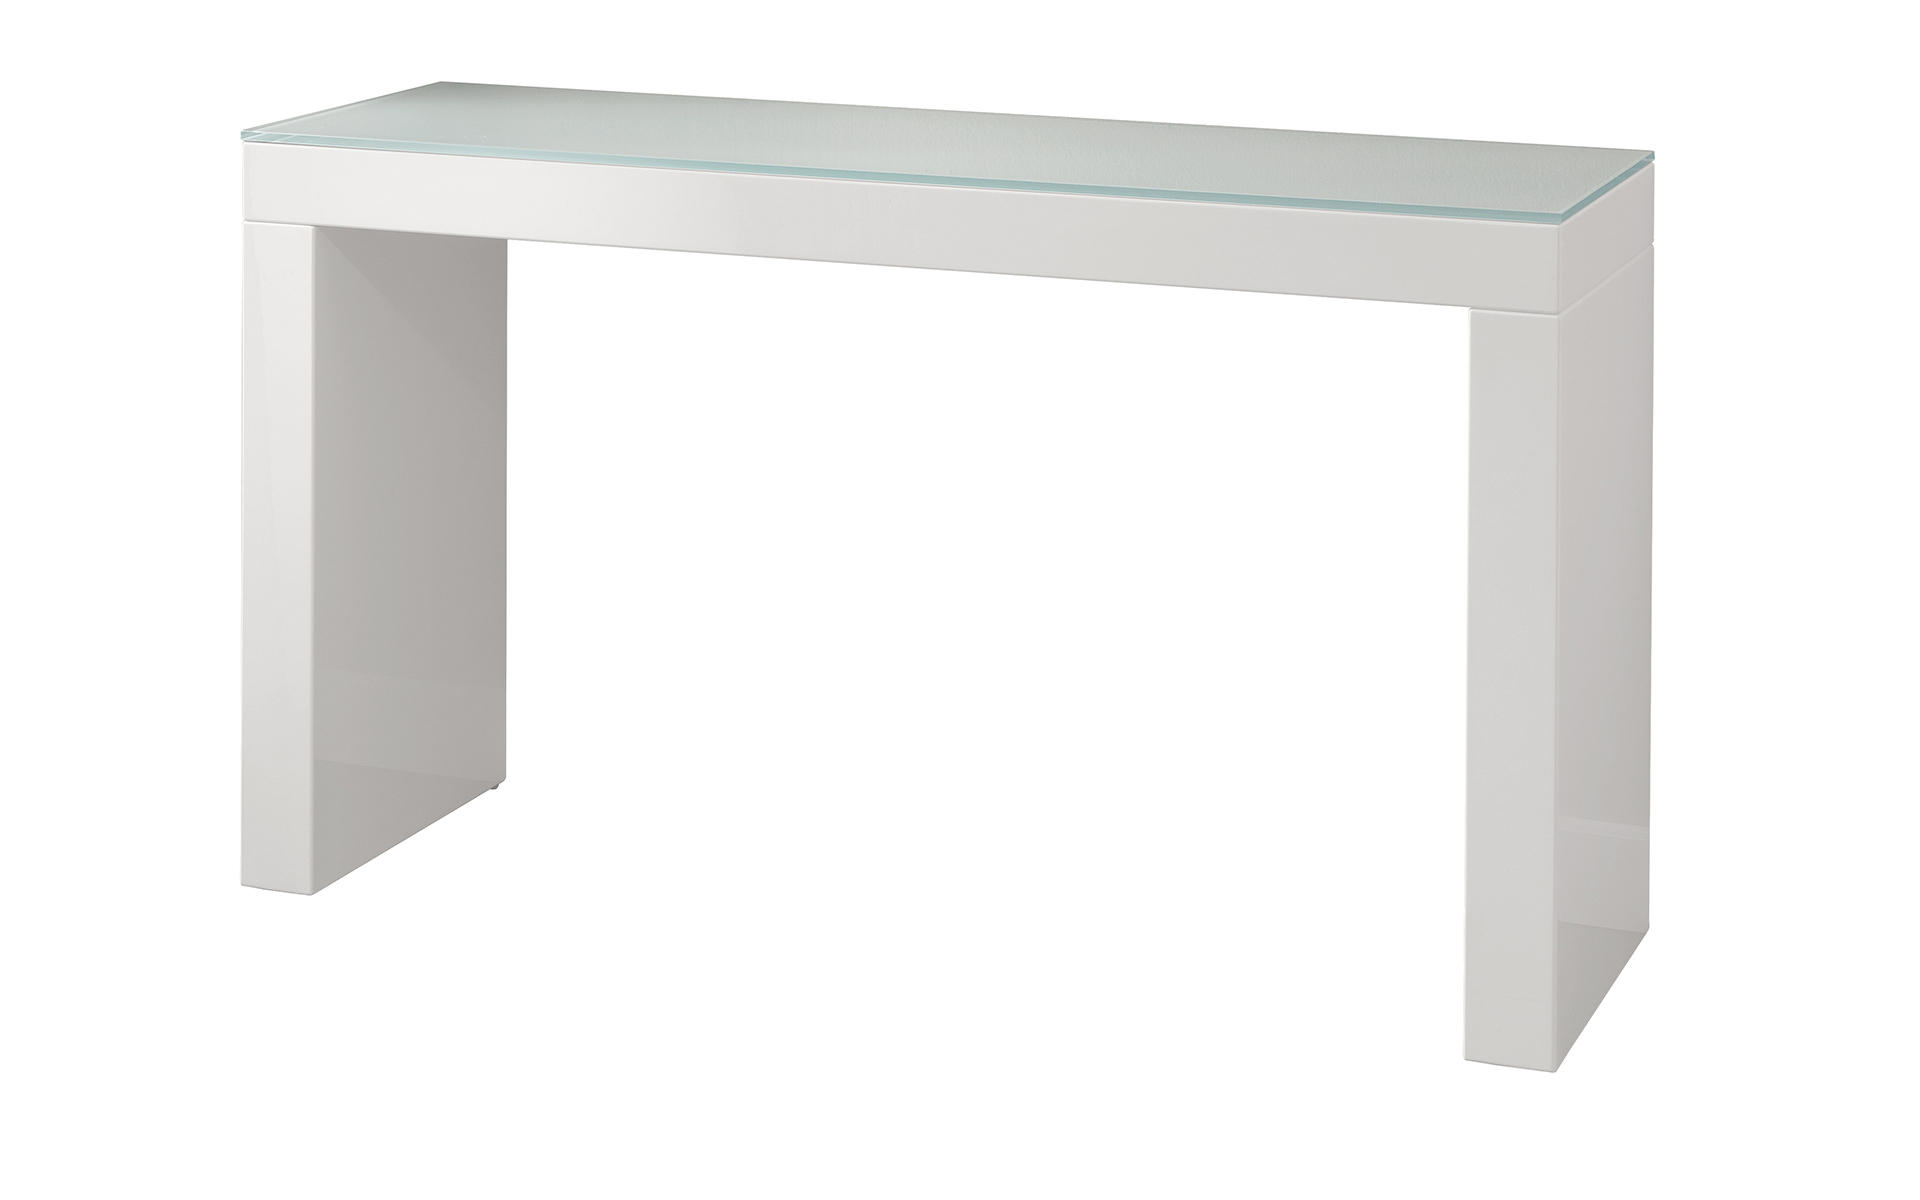 Modern Coffee Table Malou Finkeldei